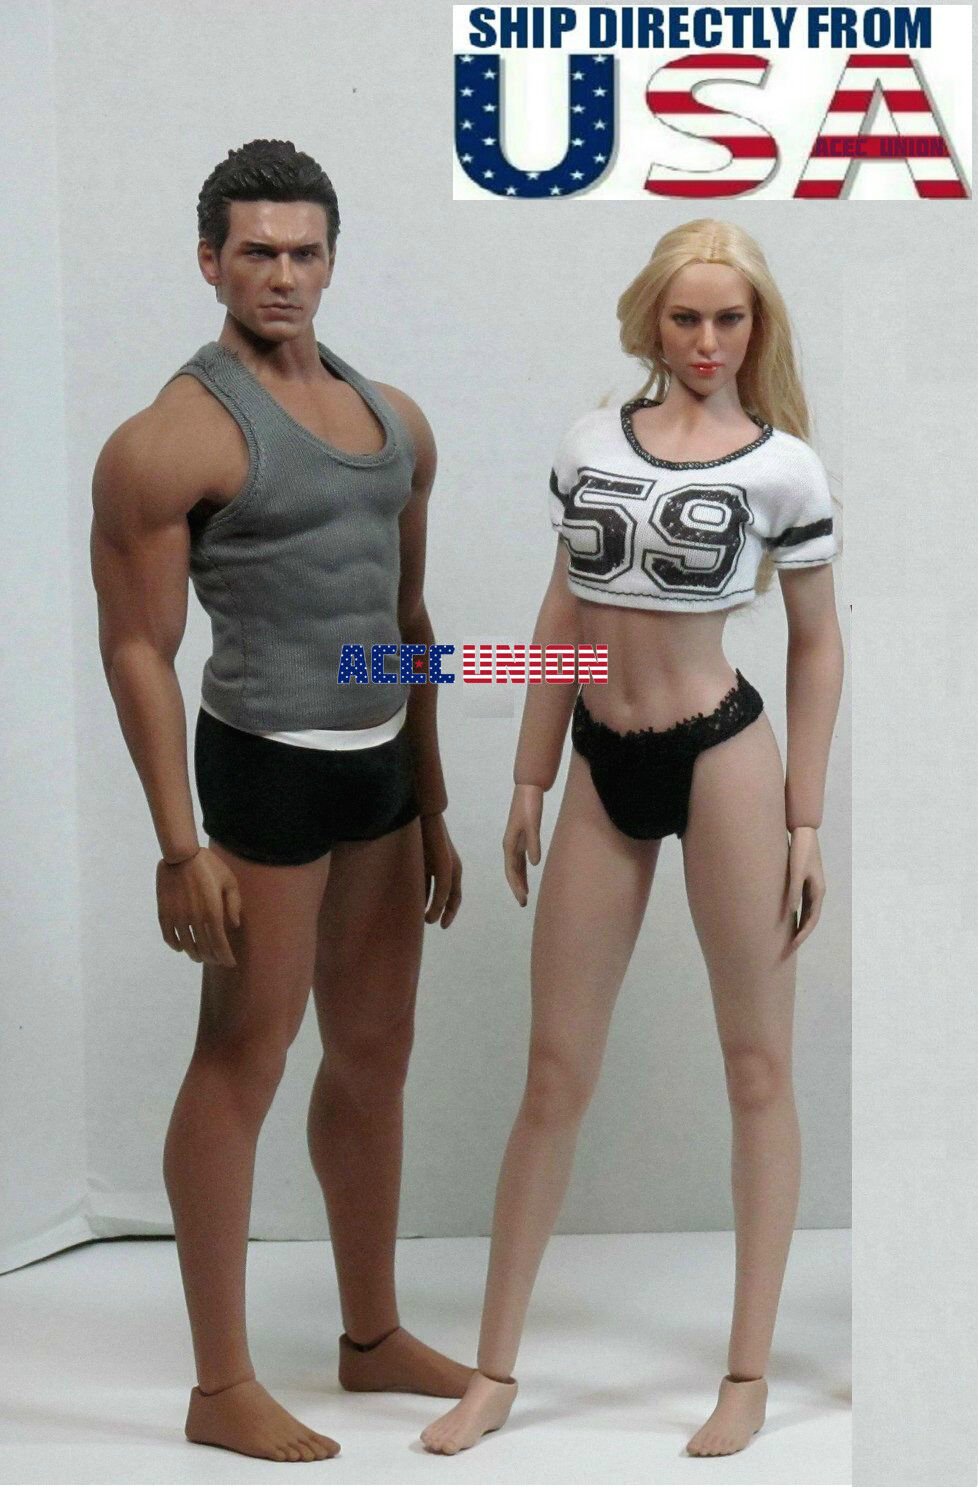 PHICEN TBLeague 1/6 Scale Steel Skeleton SEAMLESS Figure Body Doll Set U.S.A.